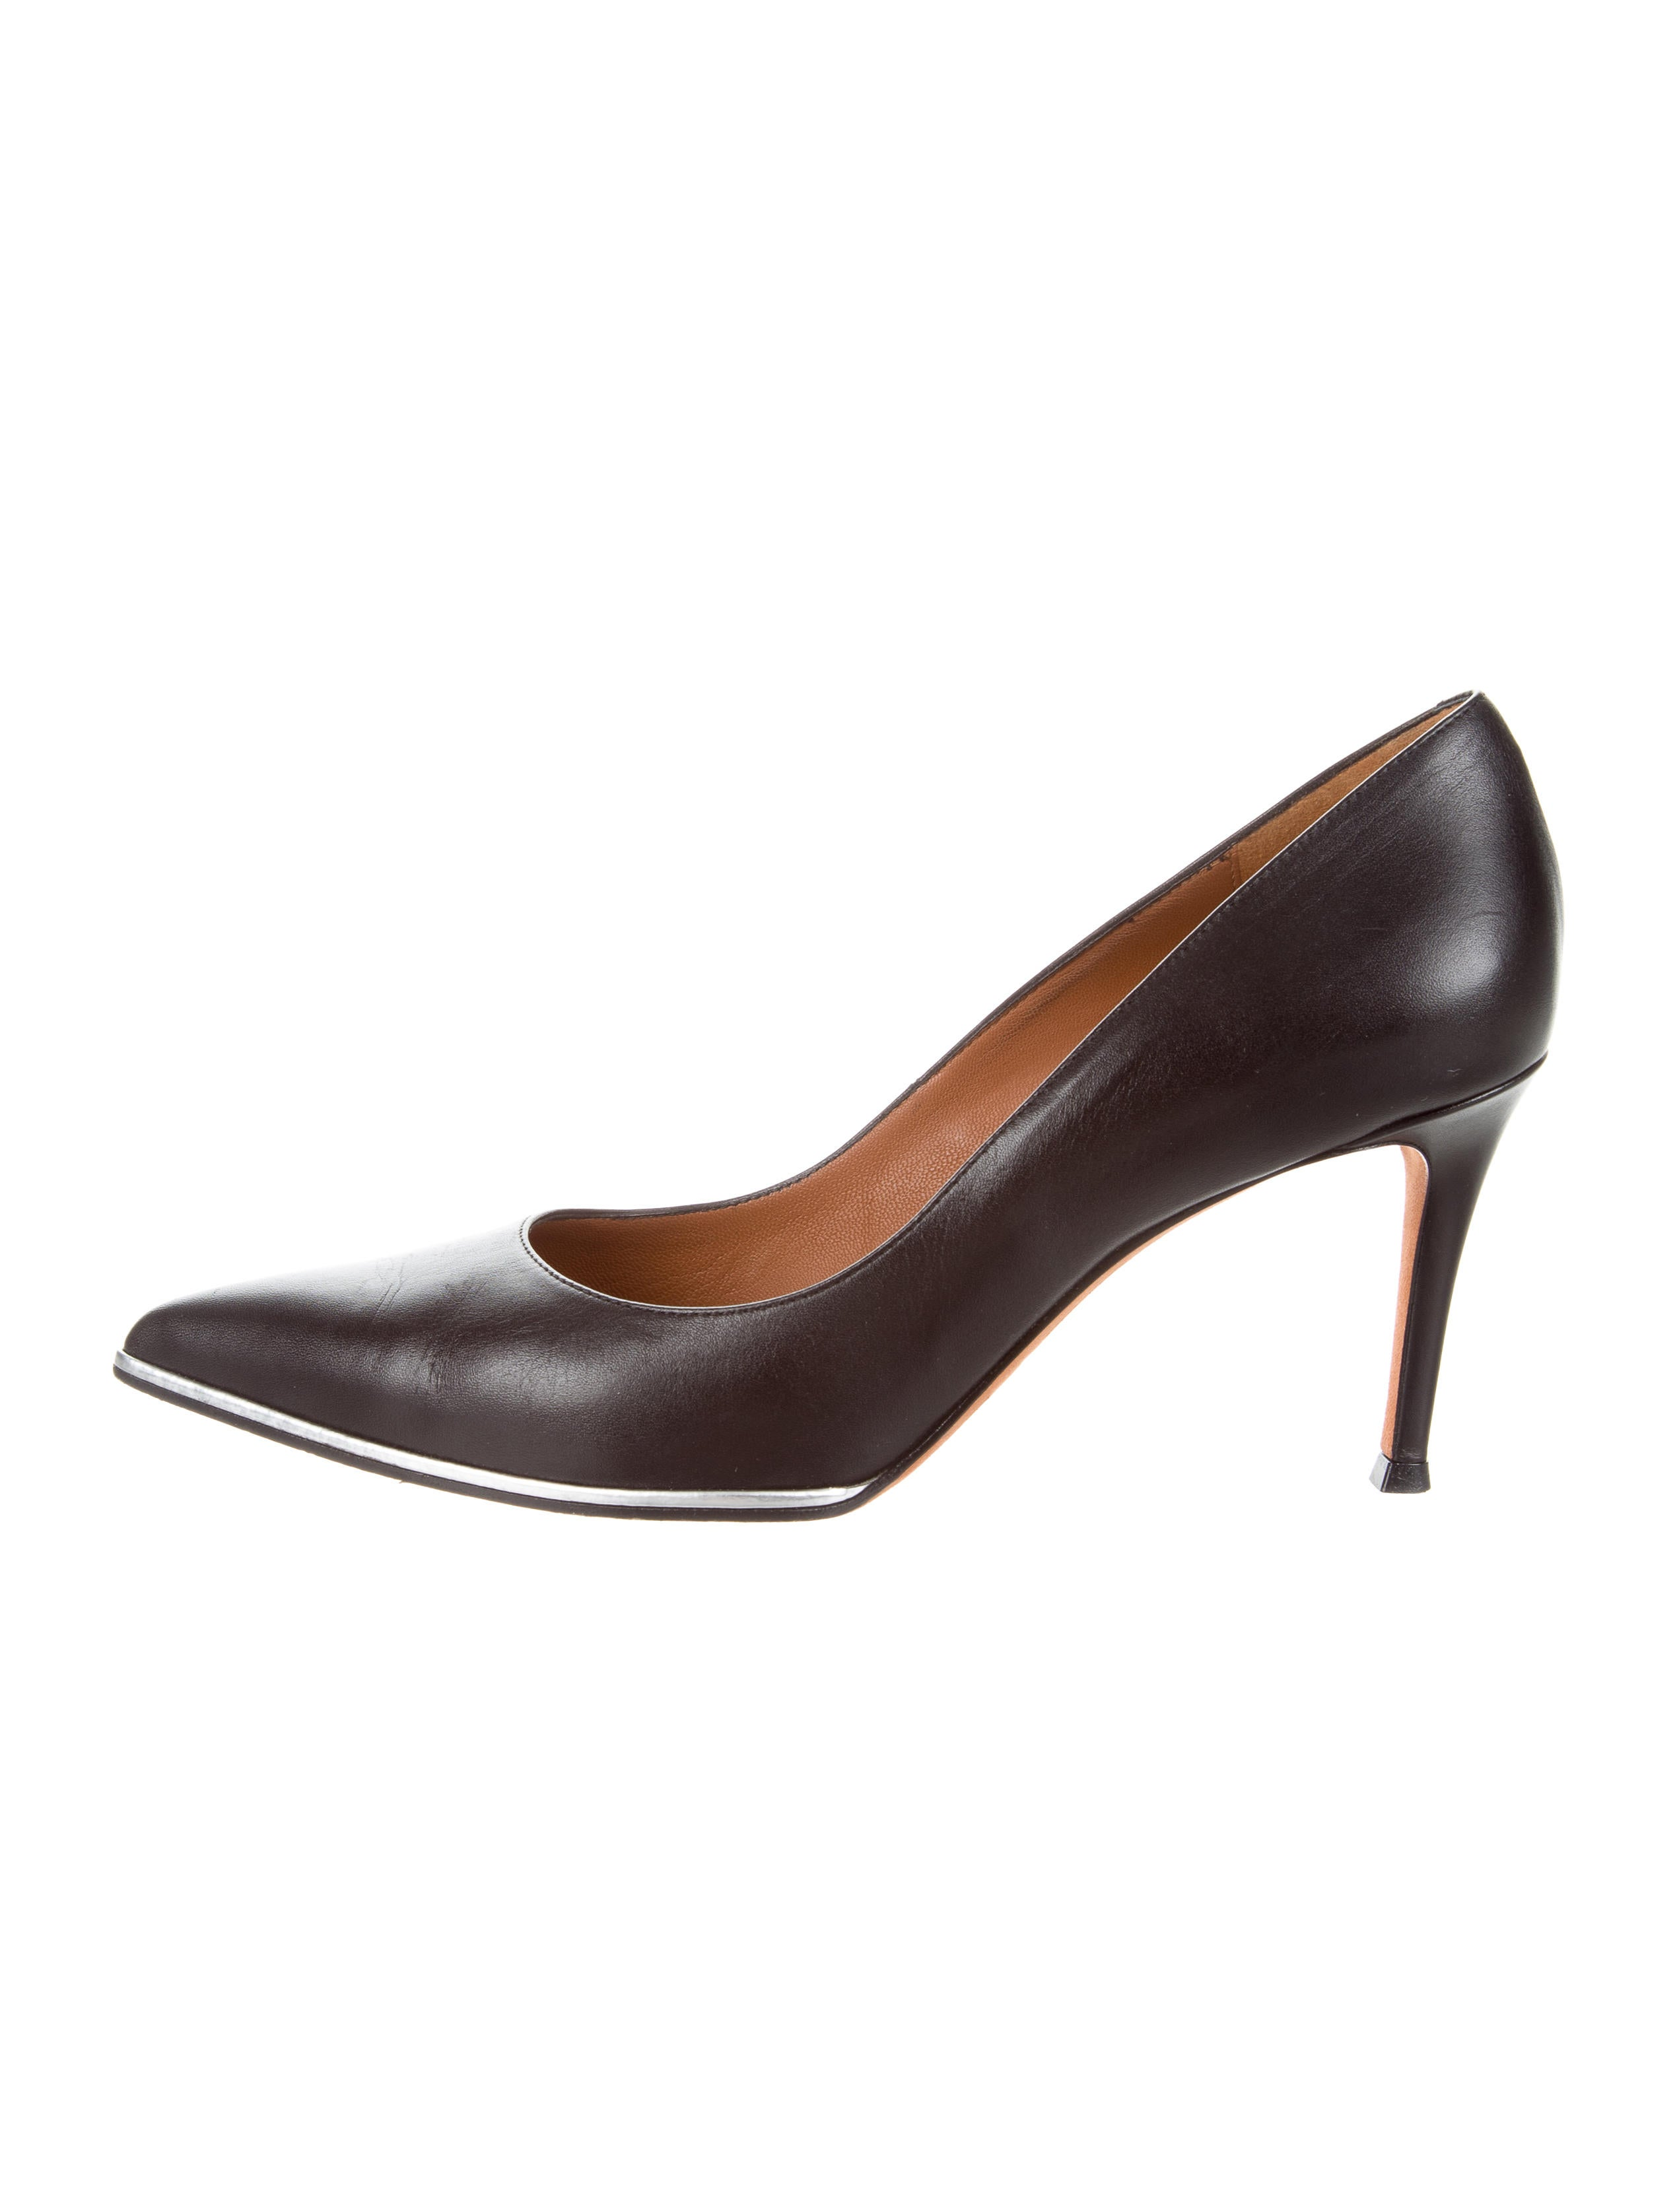 new styles for sale the cheapest sale online Givenchy Leather Pointed-Toe Pumps cheap price discount authentic qtNeyVYT